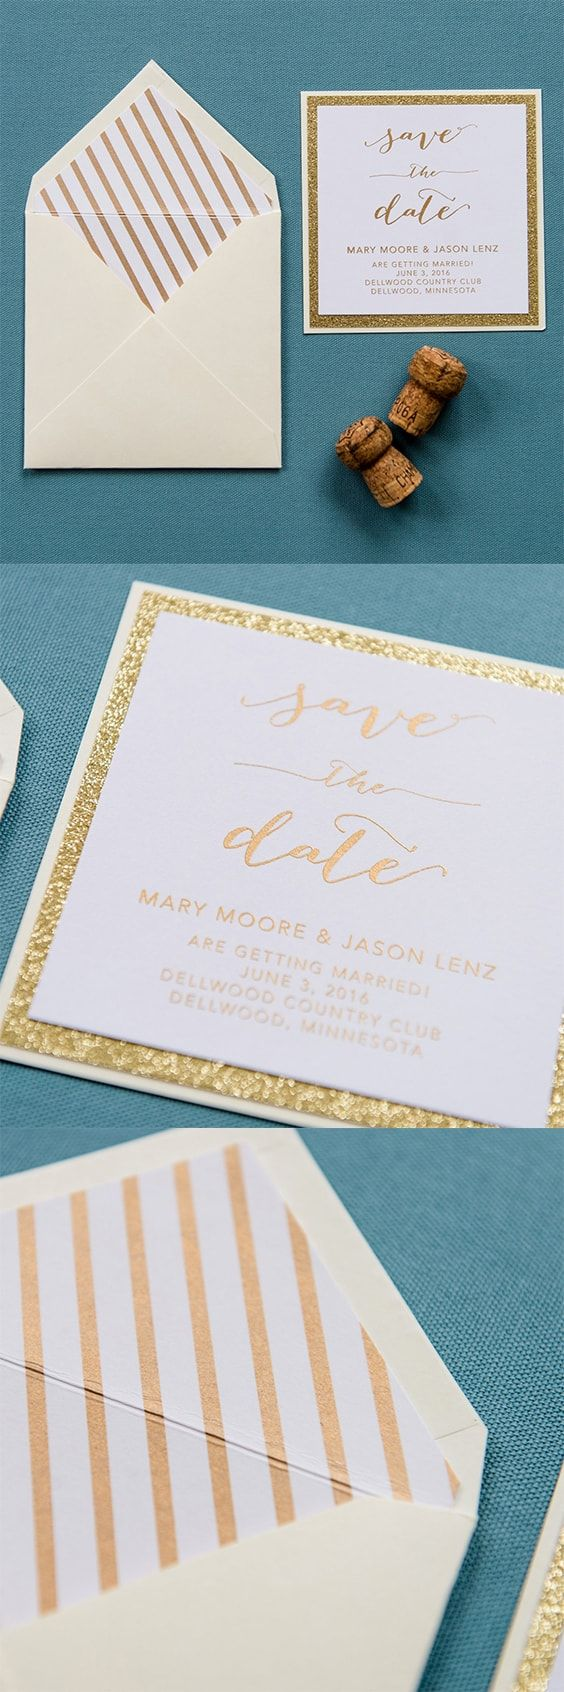 #Glitter Save the Date by @engagingpapers. A classic take on our Heather Save the Date, but with a bit more #glam and personality. This 3 layer #savethedate features a base layer of cardstock coupled with a layer of glitter that gives that wow factor. Finally, topped off with a layer of white matte cardstock with your information printed in #gold #metallic ink. The #envelope is lined with a striped metallic ink as well.